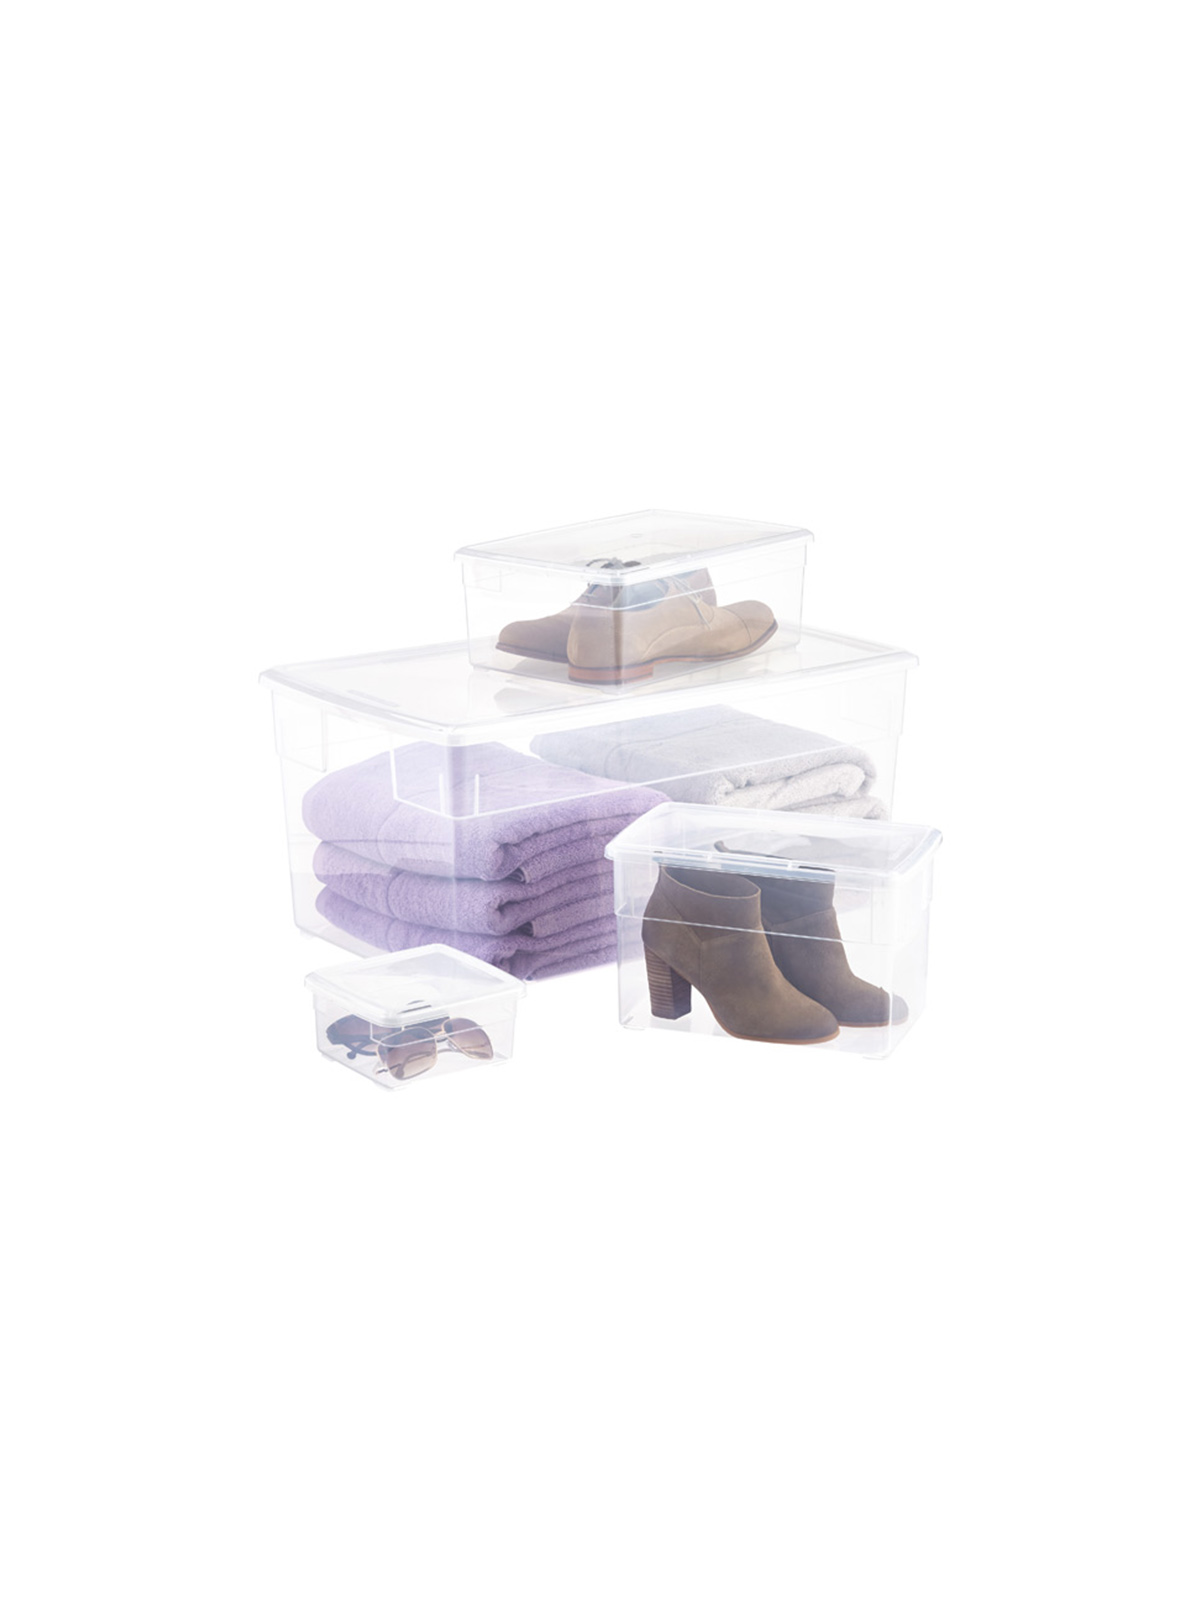 Best Container Store Organizers, clear plastic storage bins